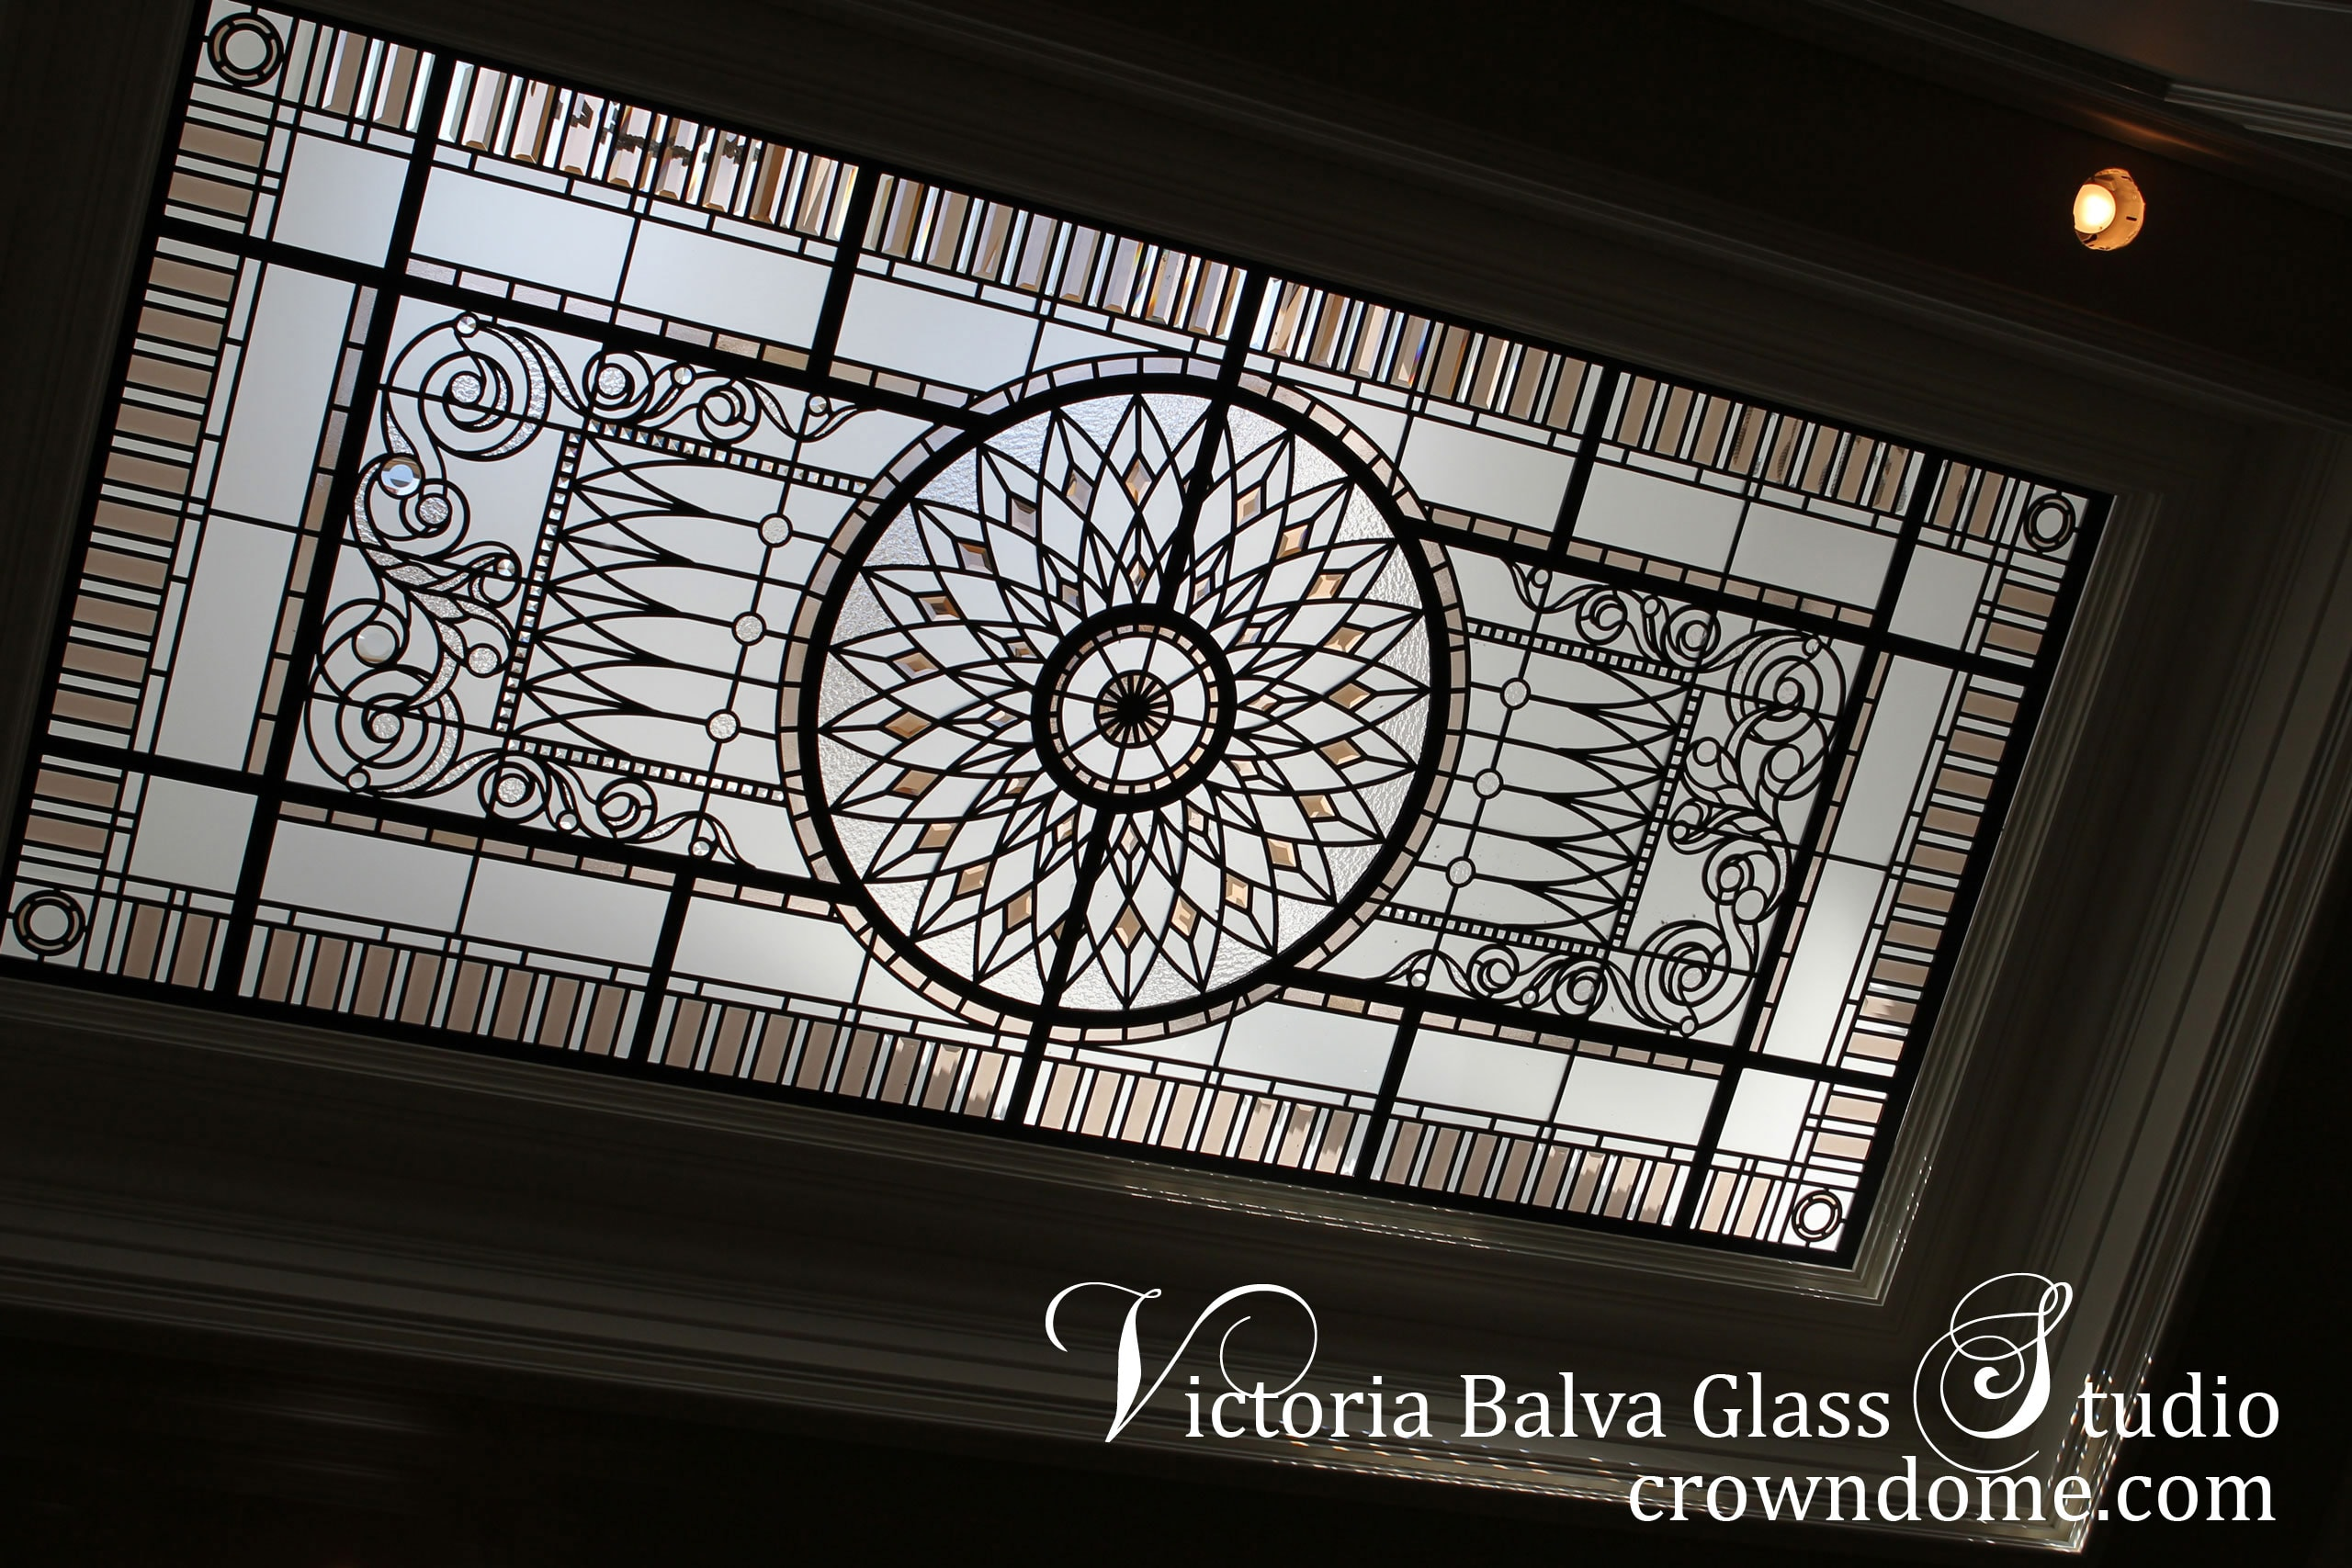 Luxury stained leaded glass skylight ceiling Marion with pale colored beveled glass, acanthus ornamental border, clear textured glass for a stairwell of a custom built residence on Mississauga Rd. Luxury style is reflected in stained leaded glass skylight design